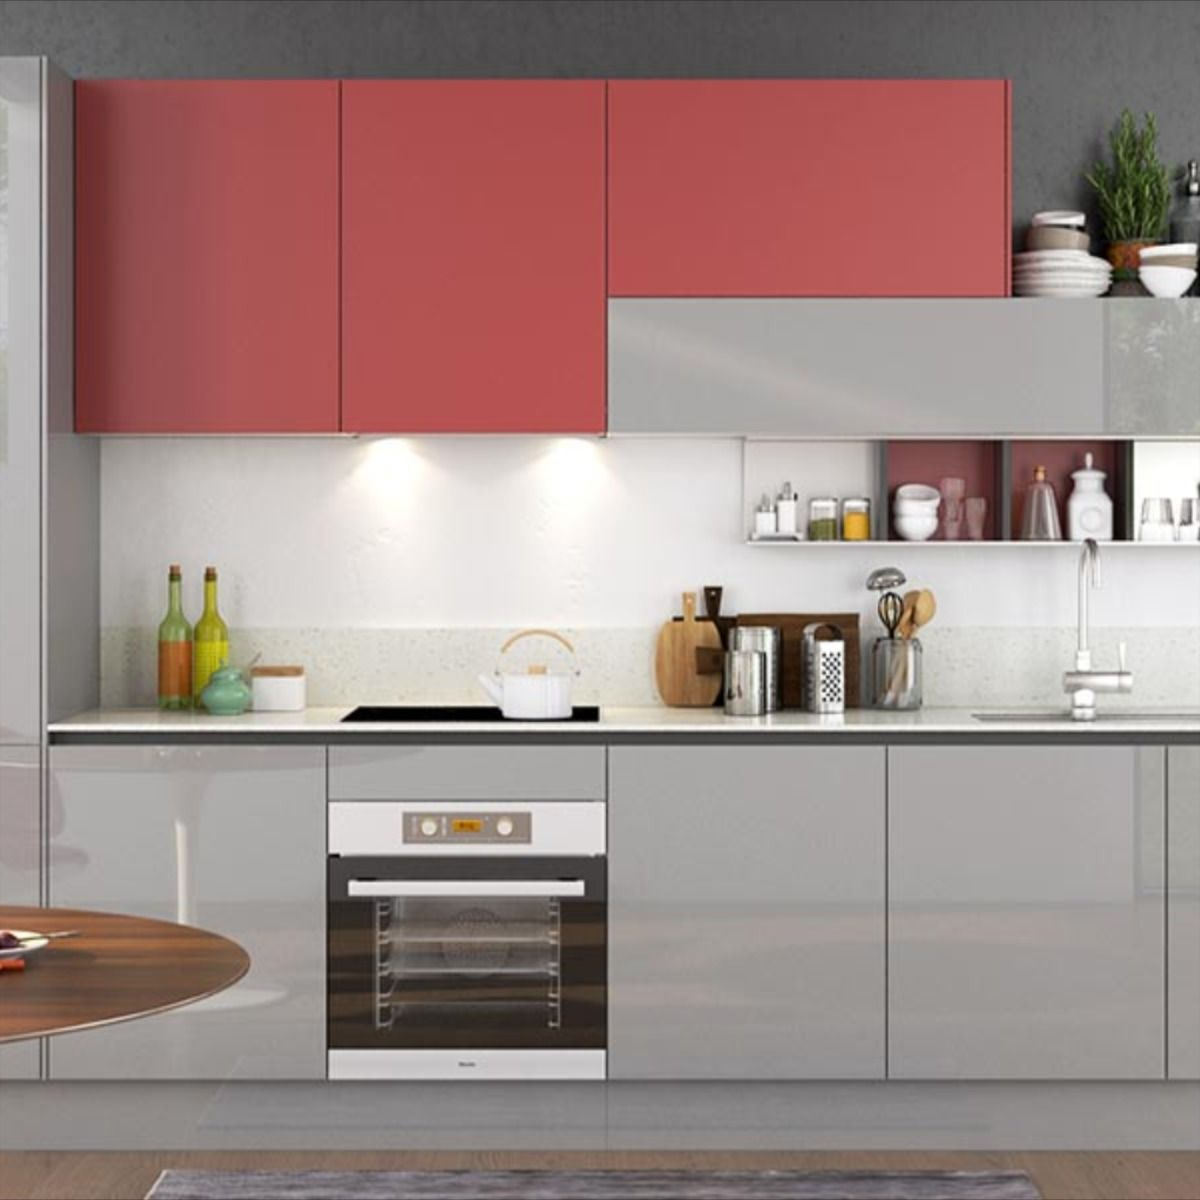 Nl Furniture 360cm Width Standard Kitchen Cabinet With Lacquer Finish In 2020 Keukens Idee